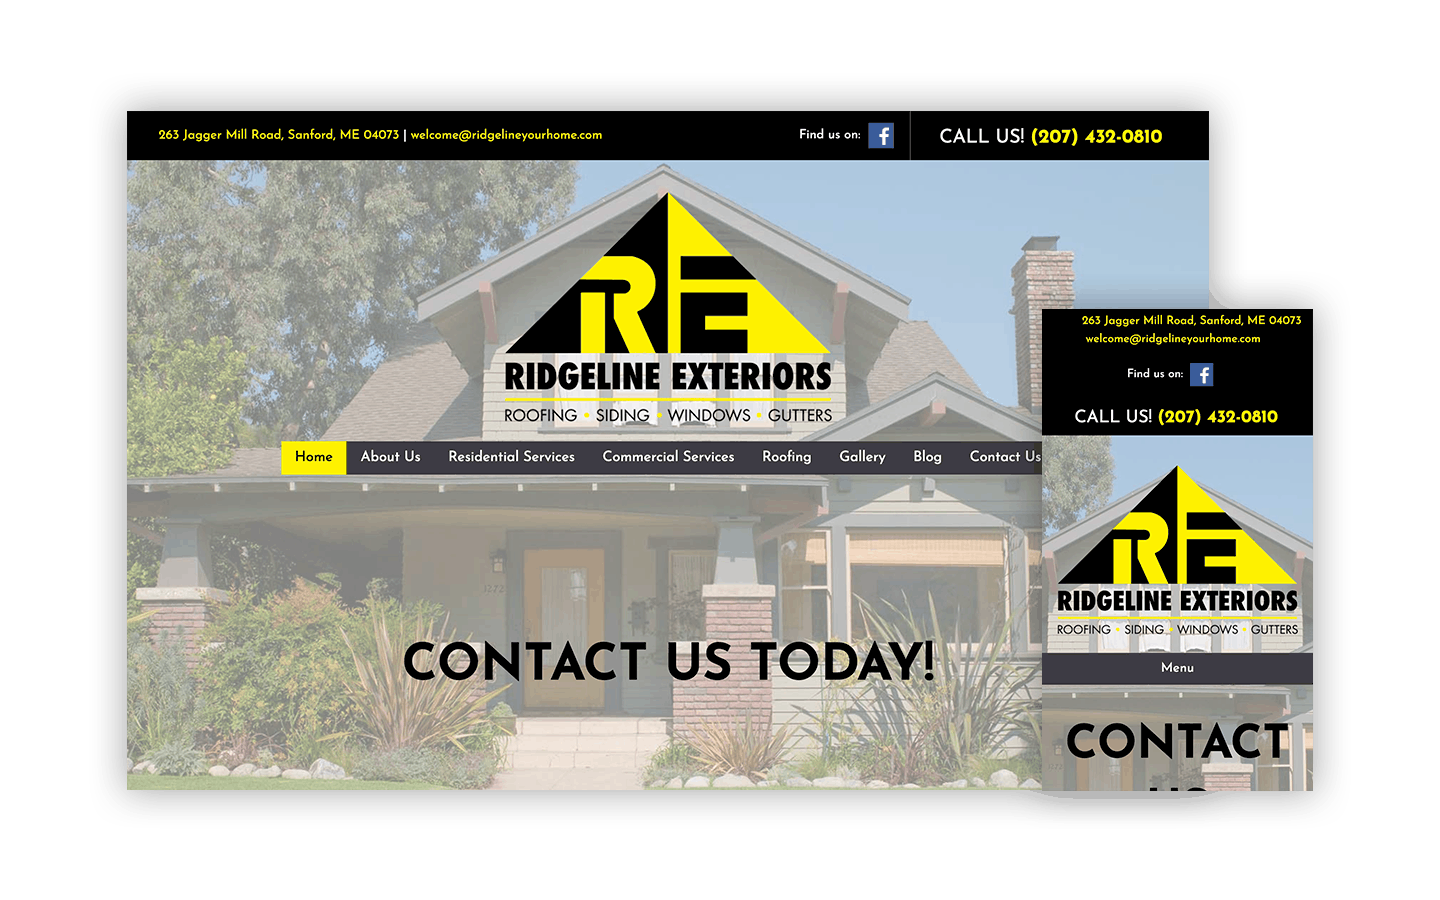 Ridgeline Exteriors Website